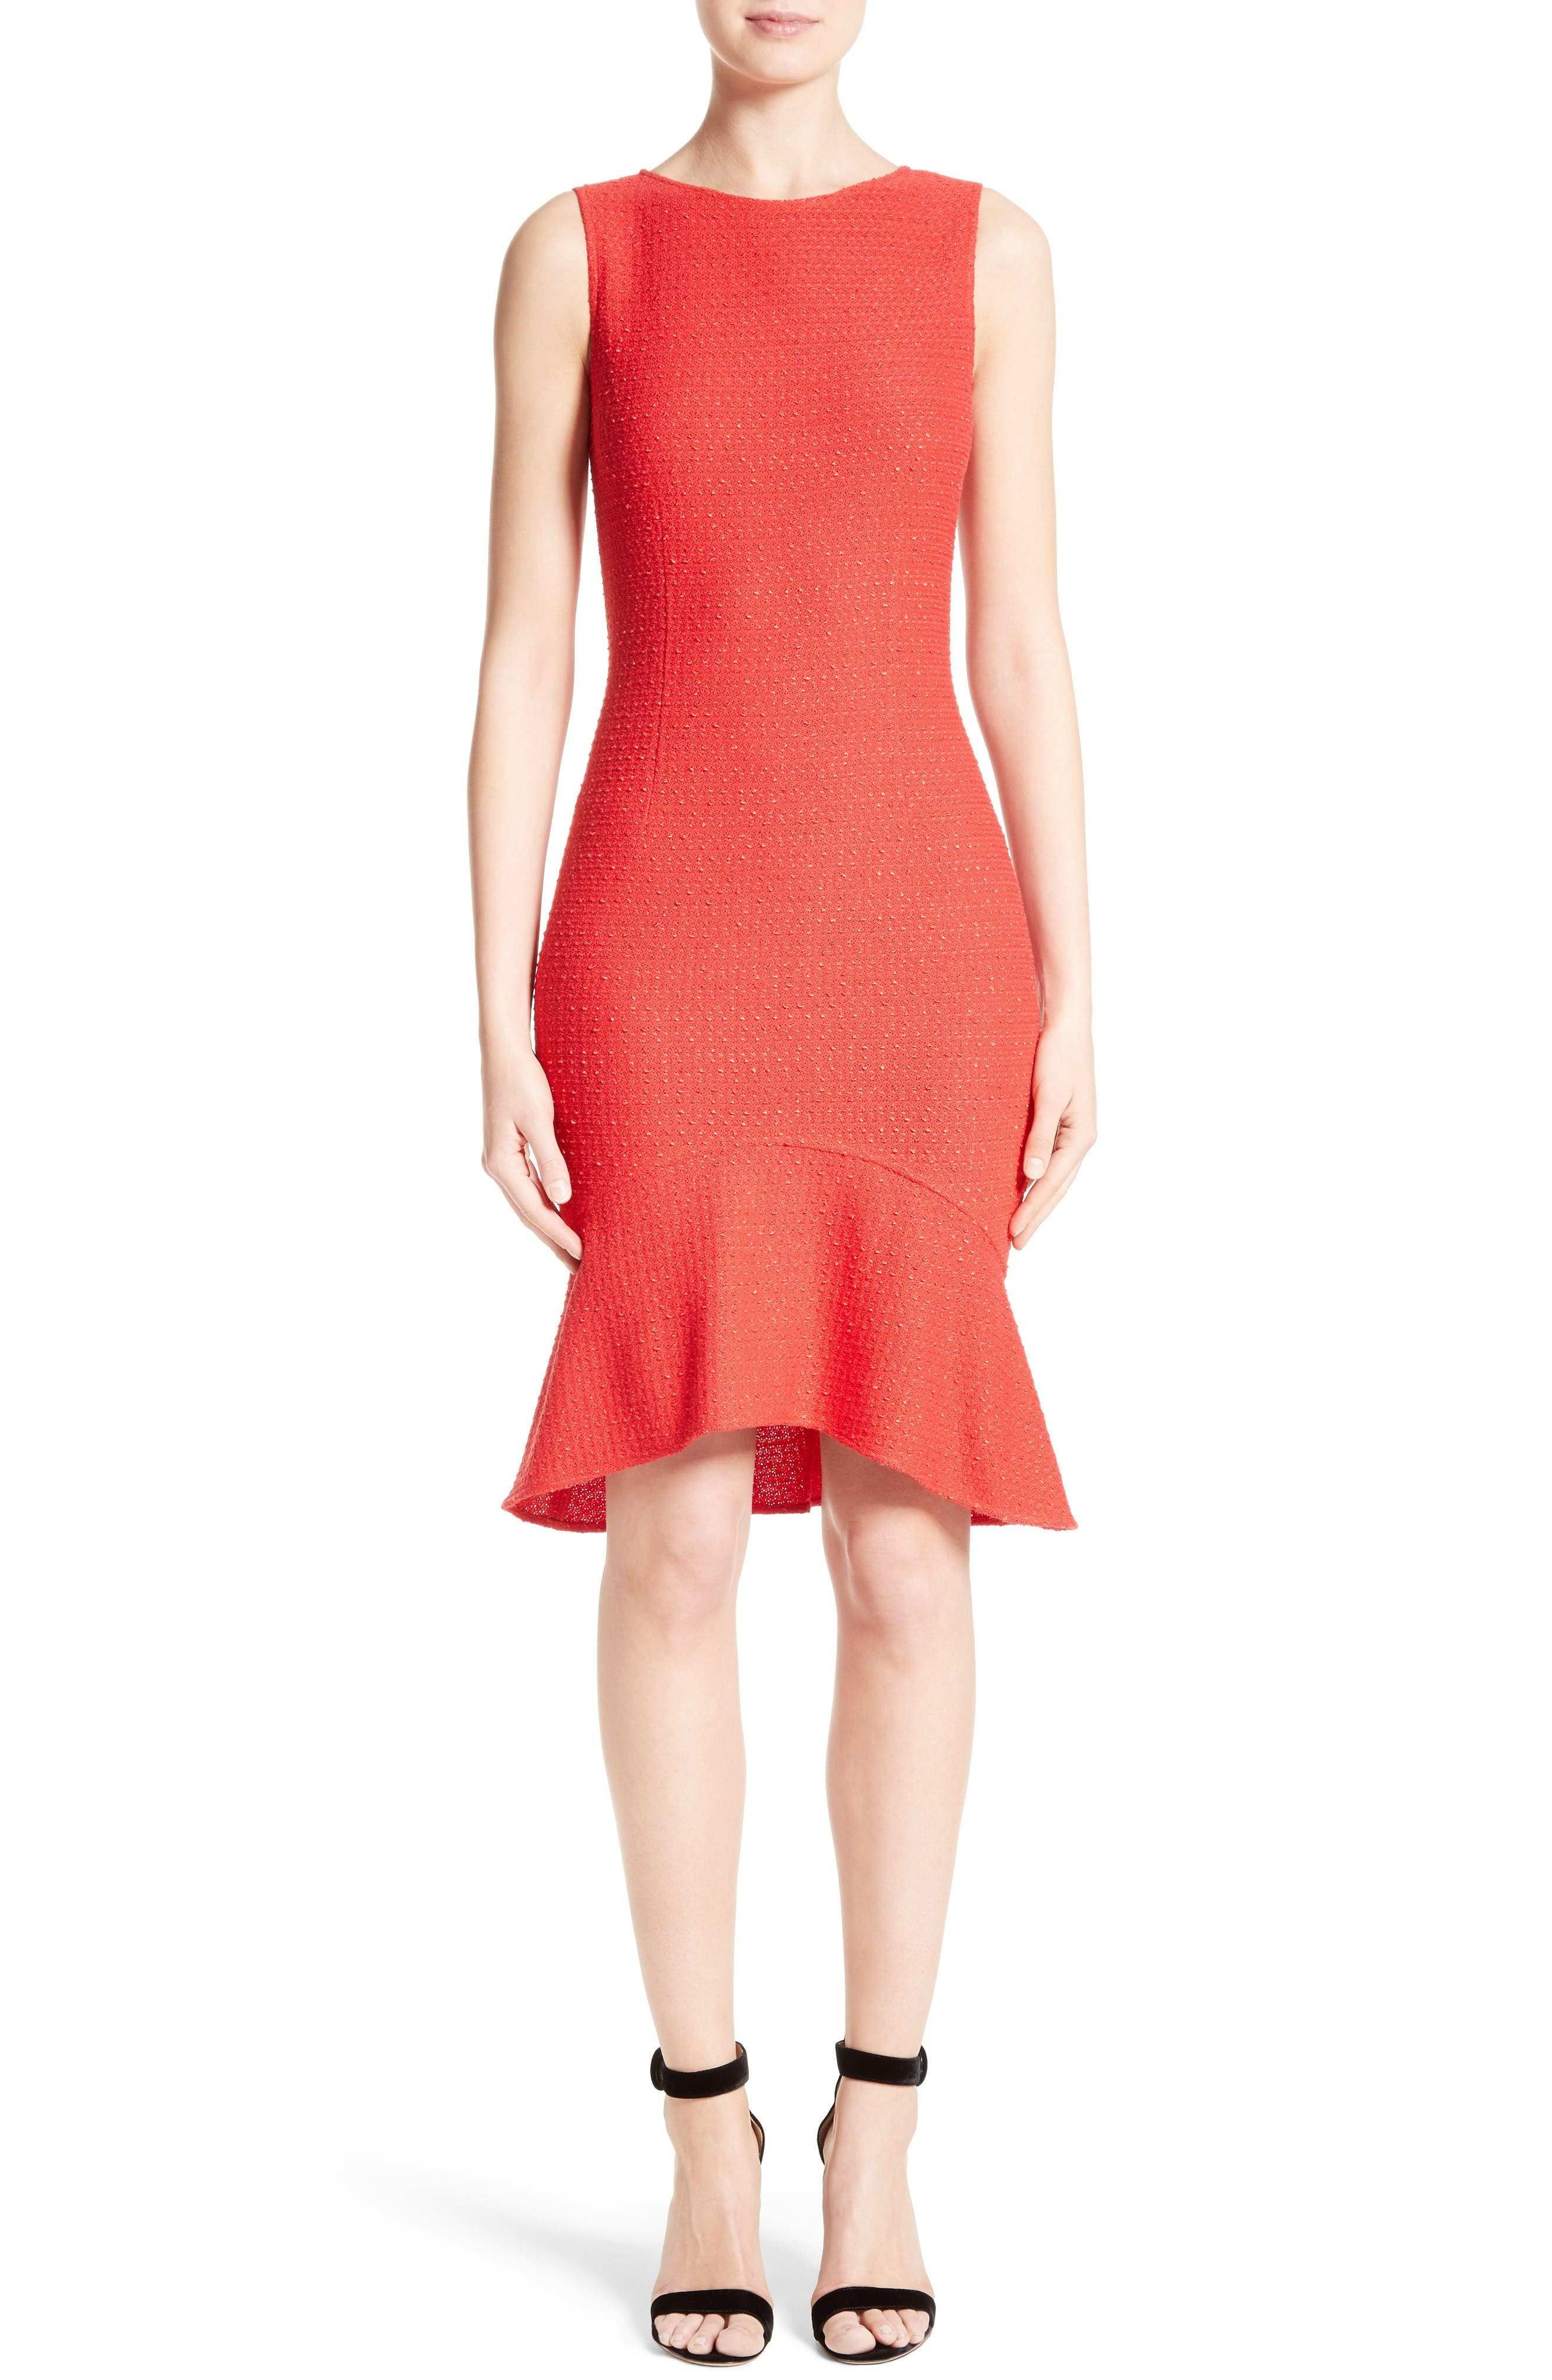 Main Image - St. John Collection Ribbon Knit Flounce Dress